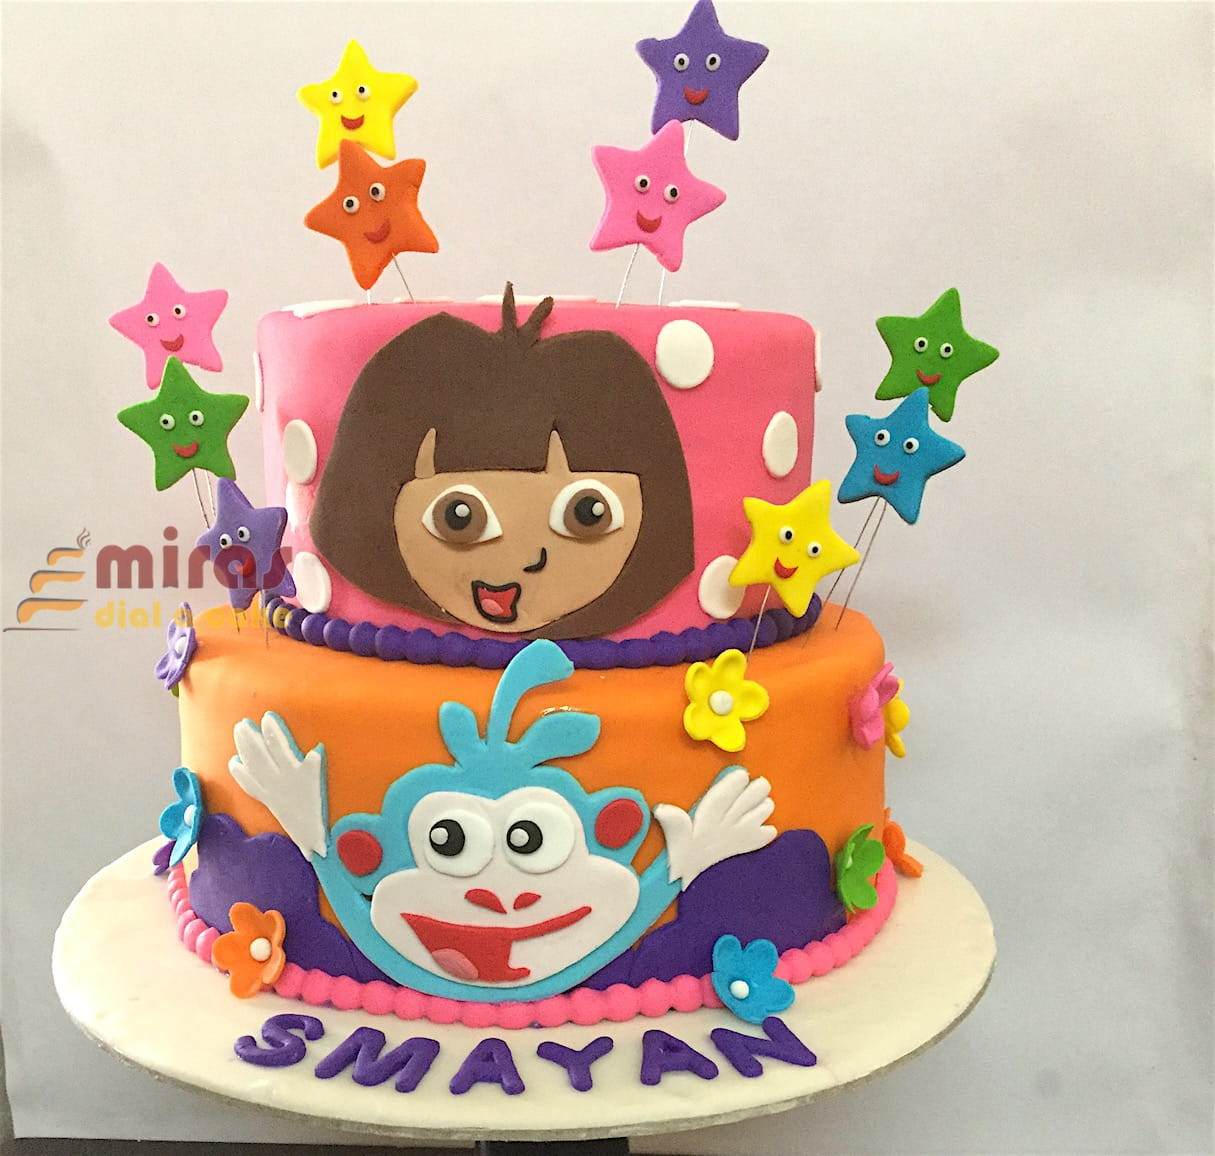 Birthday Cake Dora Theme Cake Online Birthday Cakes For Girls Bangalore Delivery Best Birthday Cakes Near Me L Miras